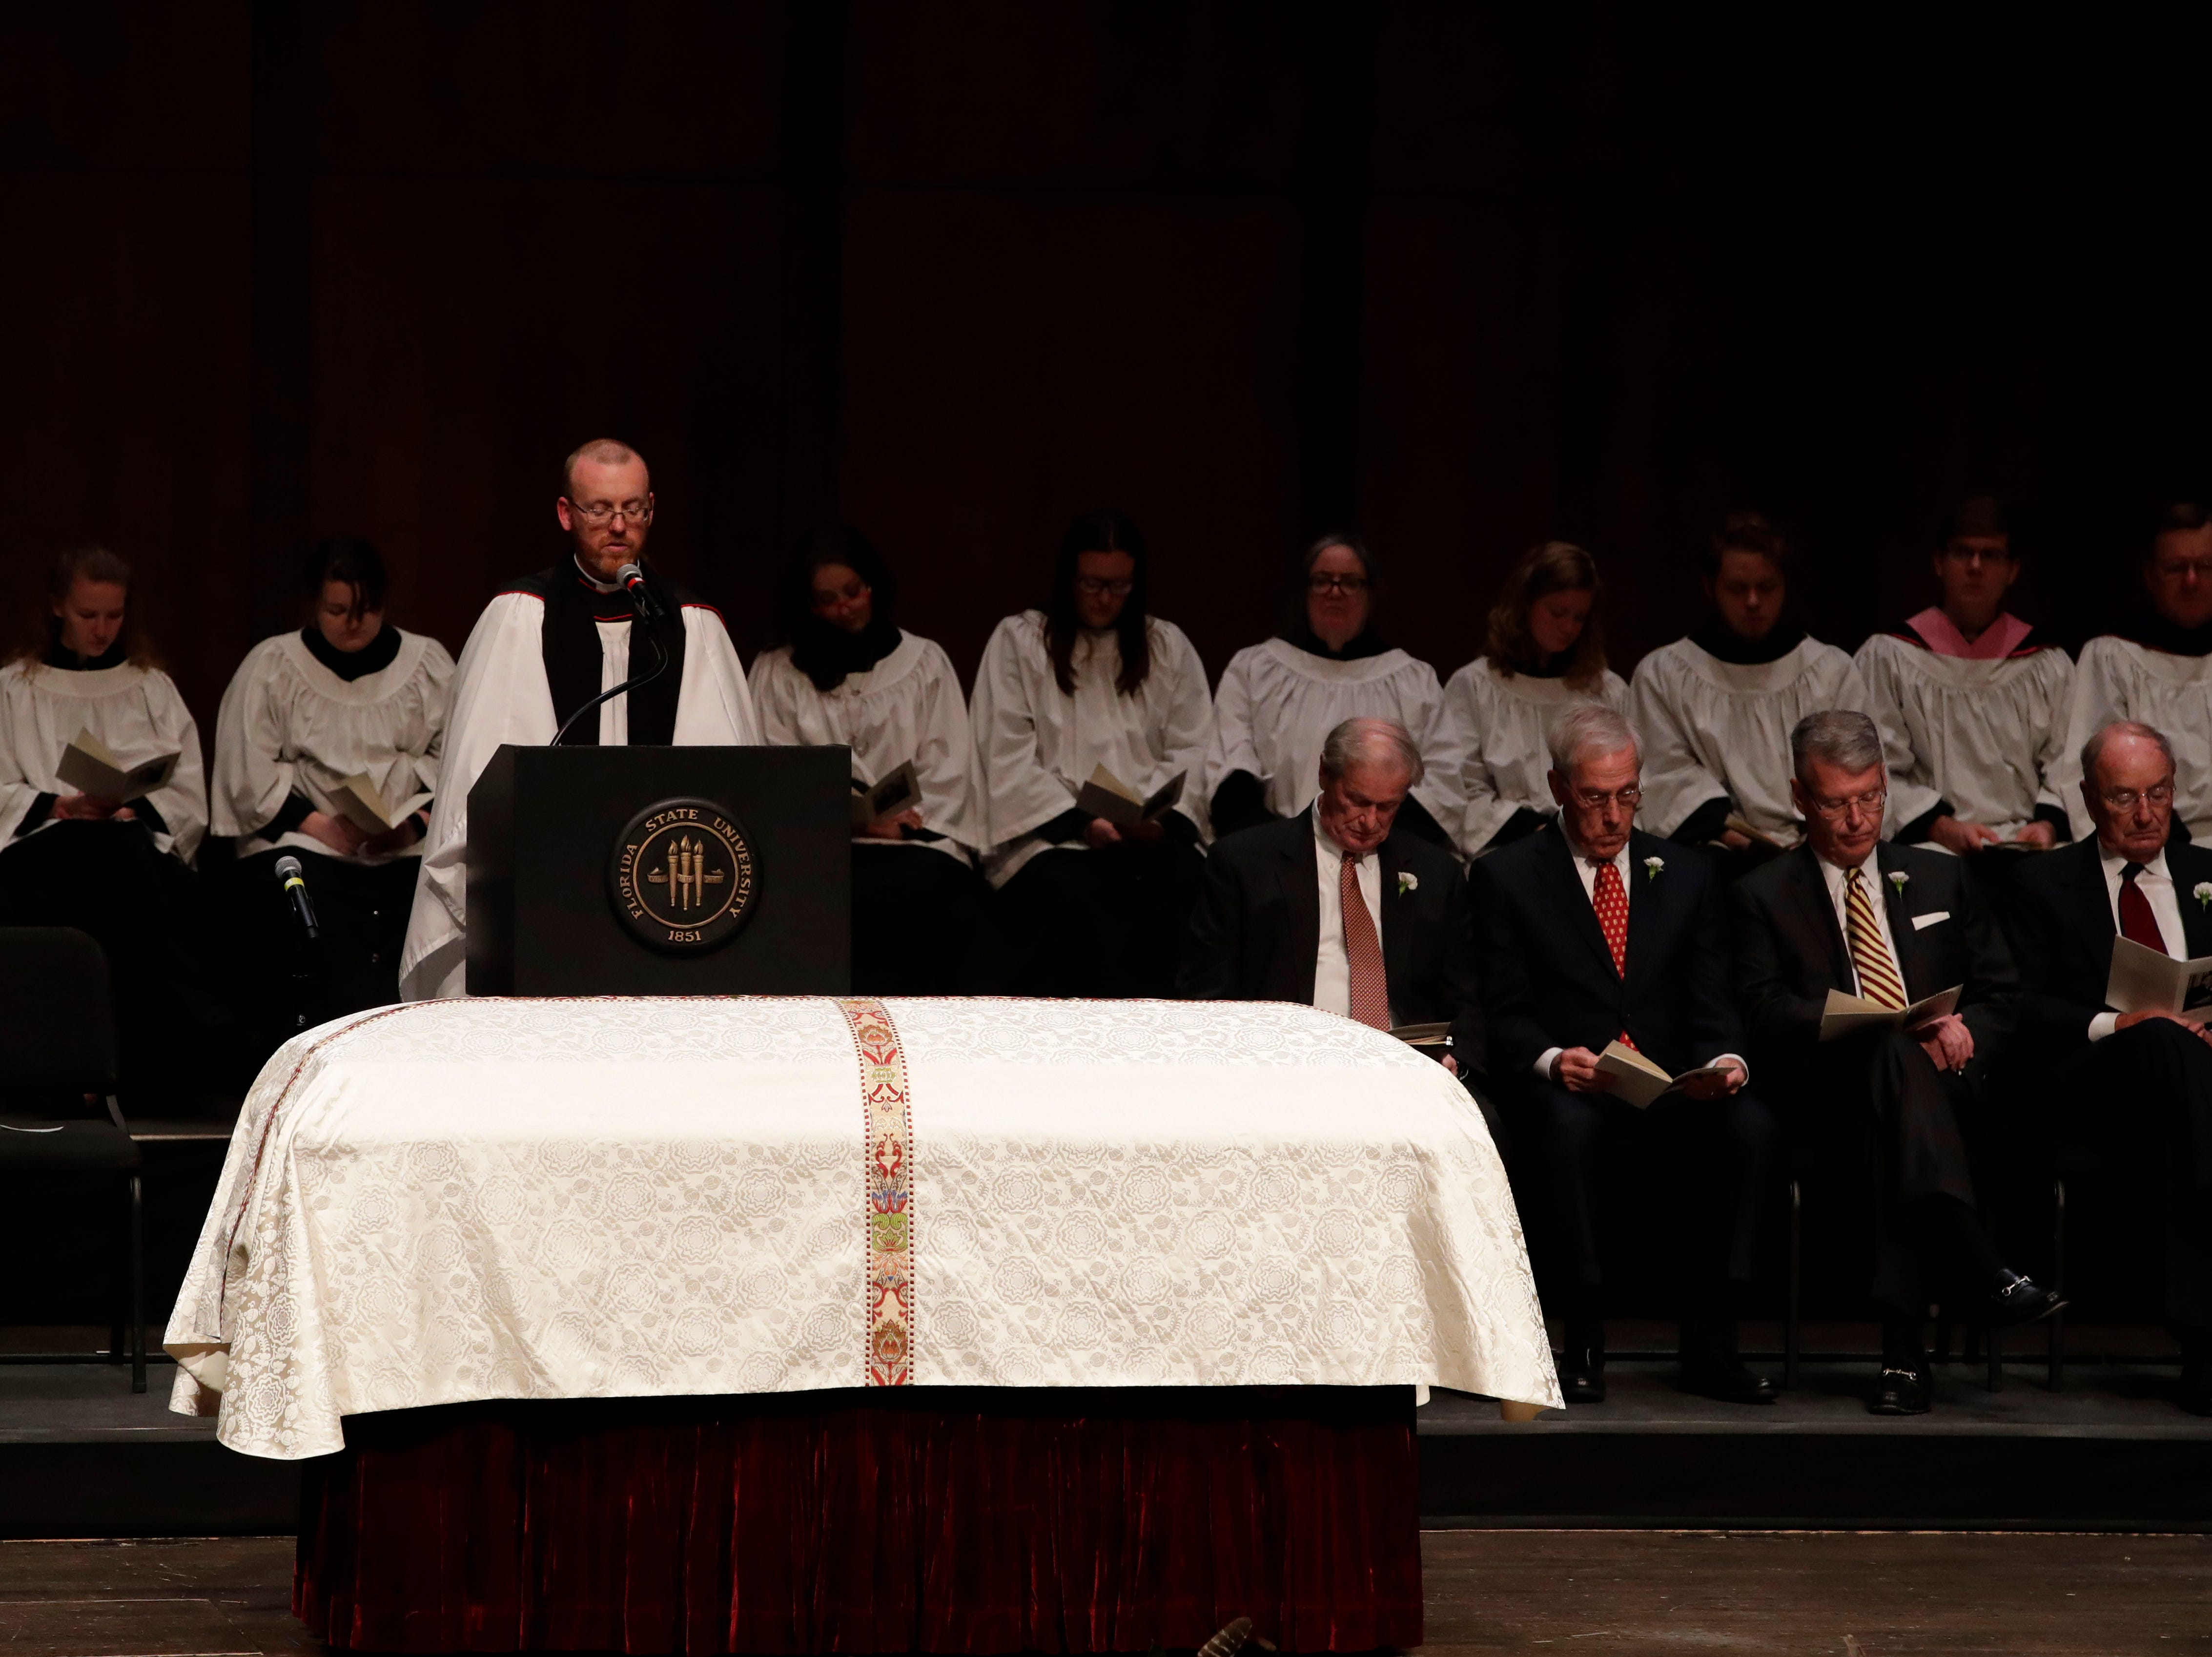 Rev. David Killeen reads Lementations 3:22-26, 31-33 during a funeral service for Florida State University President Emeritus T.K. Wetherell held at Ruby Diamond Concert Hall Friday, Dec. 21, 2018.